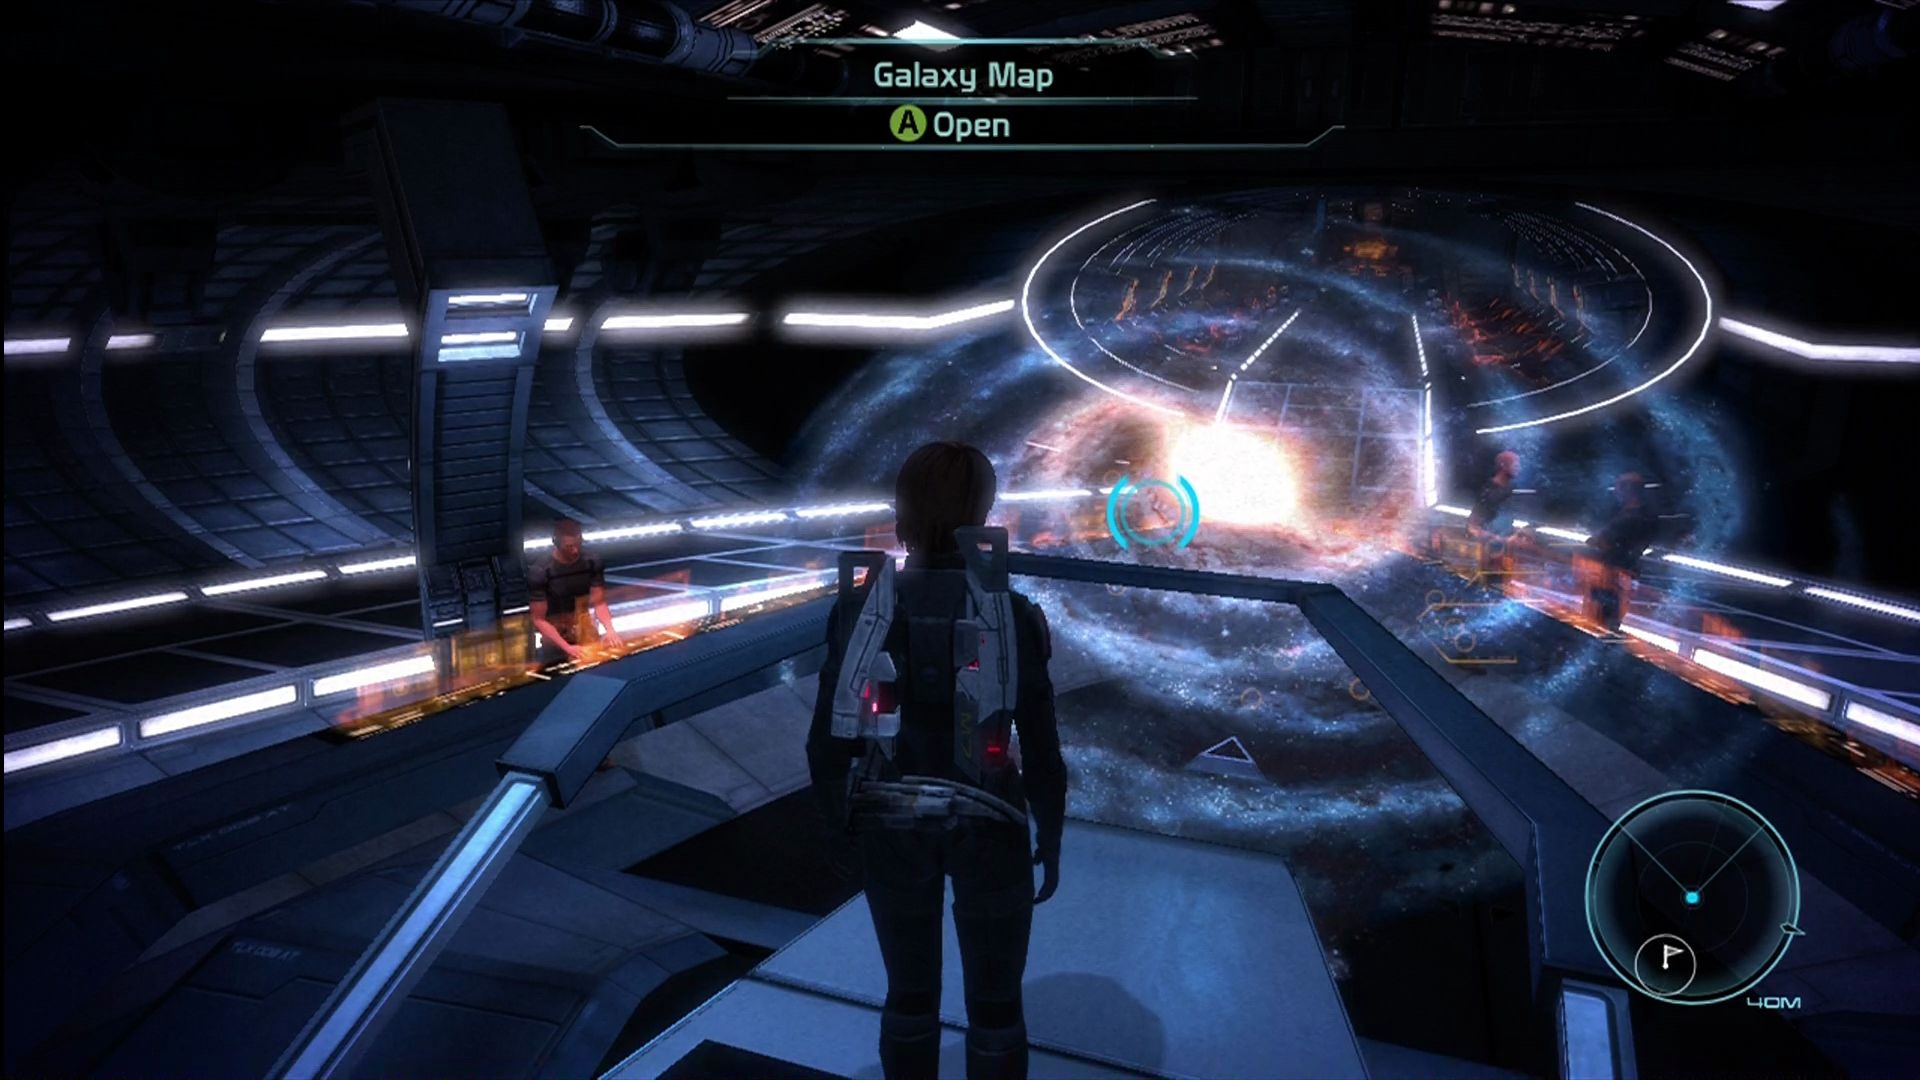 Mass Effect Xbox 360 The galactic map, where you choose your next destination.